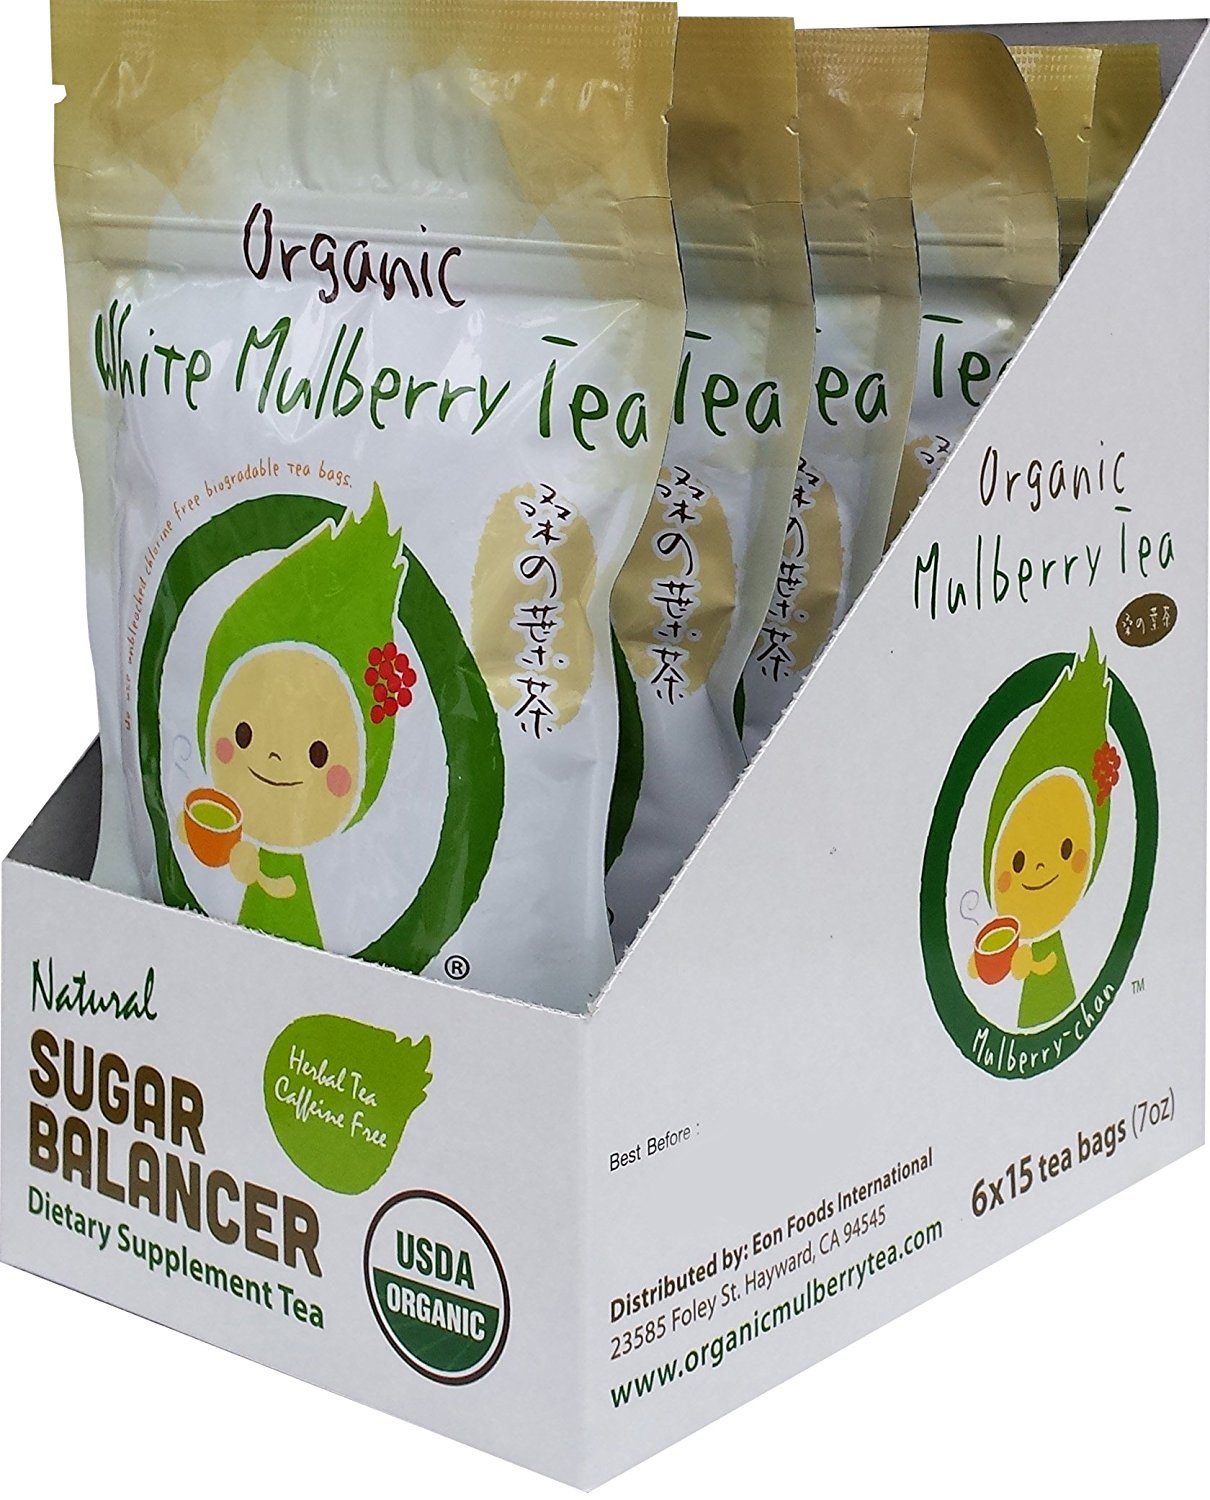 USDA Organic White Mulberry Leaf Tea (90 Teabags) Blood Sugar Controller | Caffeine Free | Boosts Immune System | Helps with Weight Loss